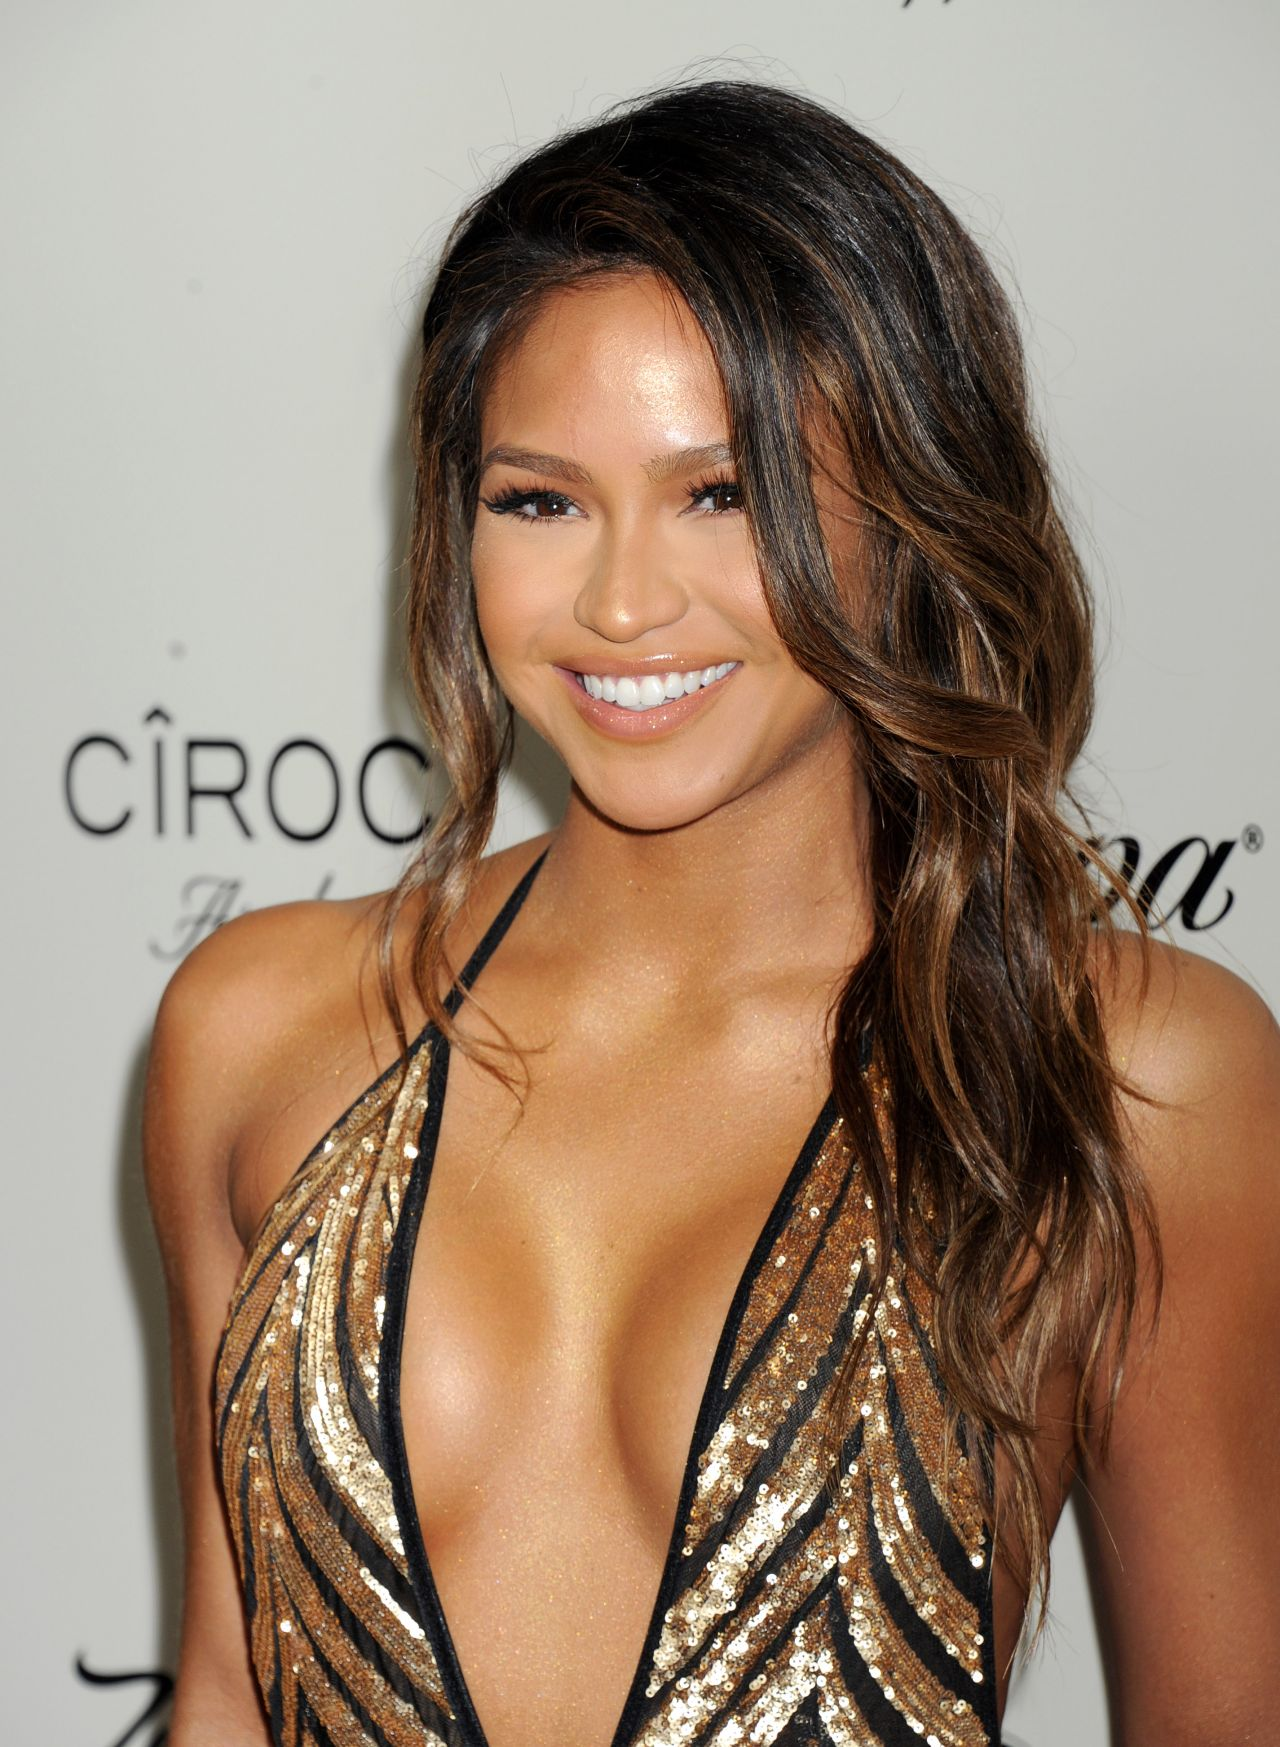 Cassie Ventura nude (56 foto and video), Topless, Is a cute, Feet, in bikini 2017